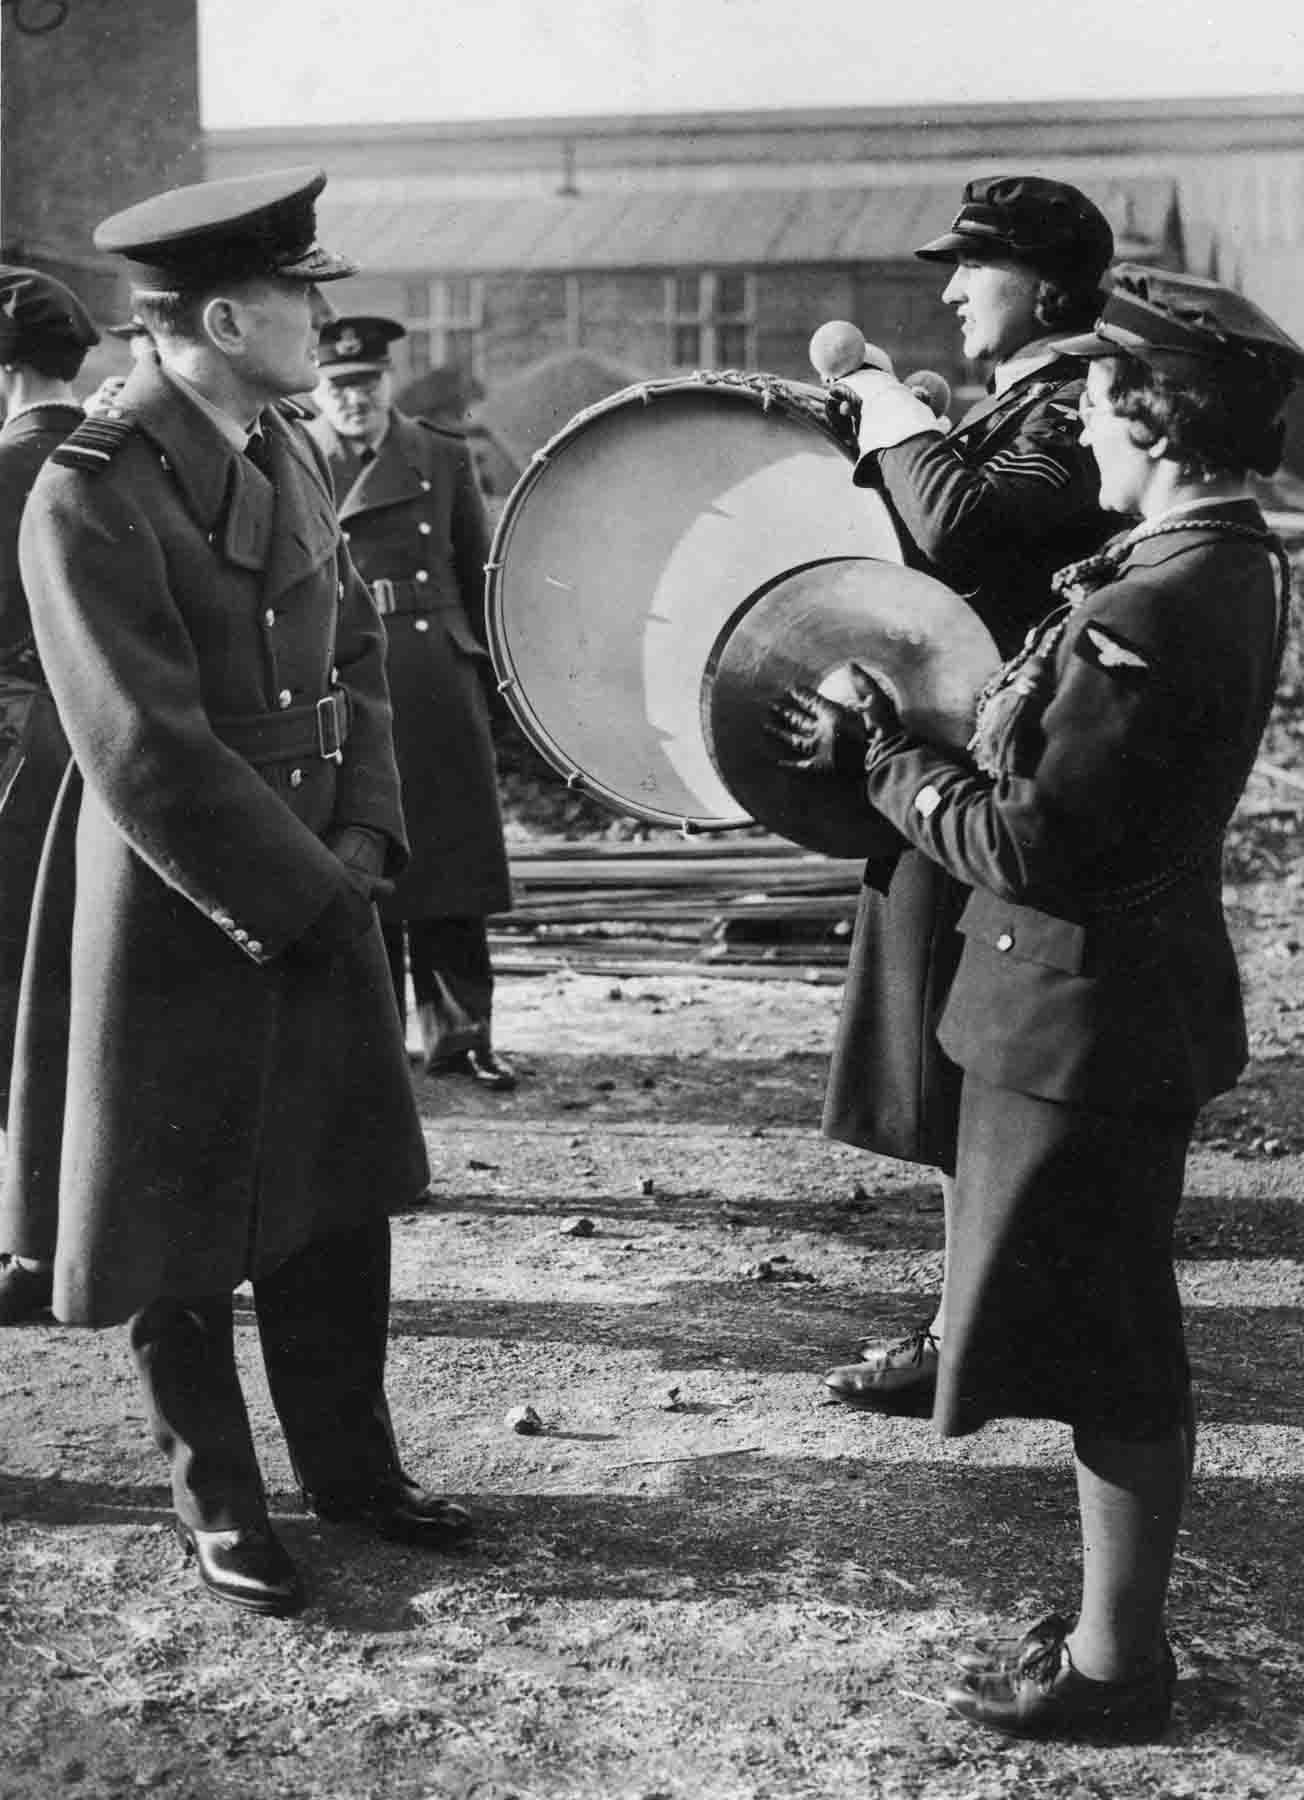 Another WAAF tradition: AM Arthur Longmore inspecting members of the WAAF Depot Band at West Drayton, Winter, 1939-1940